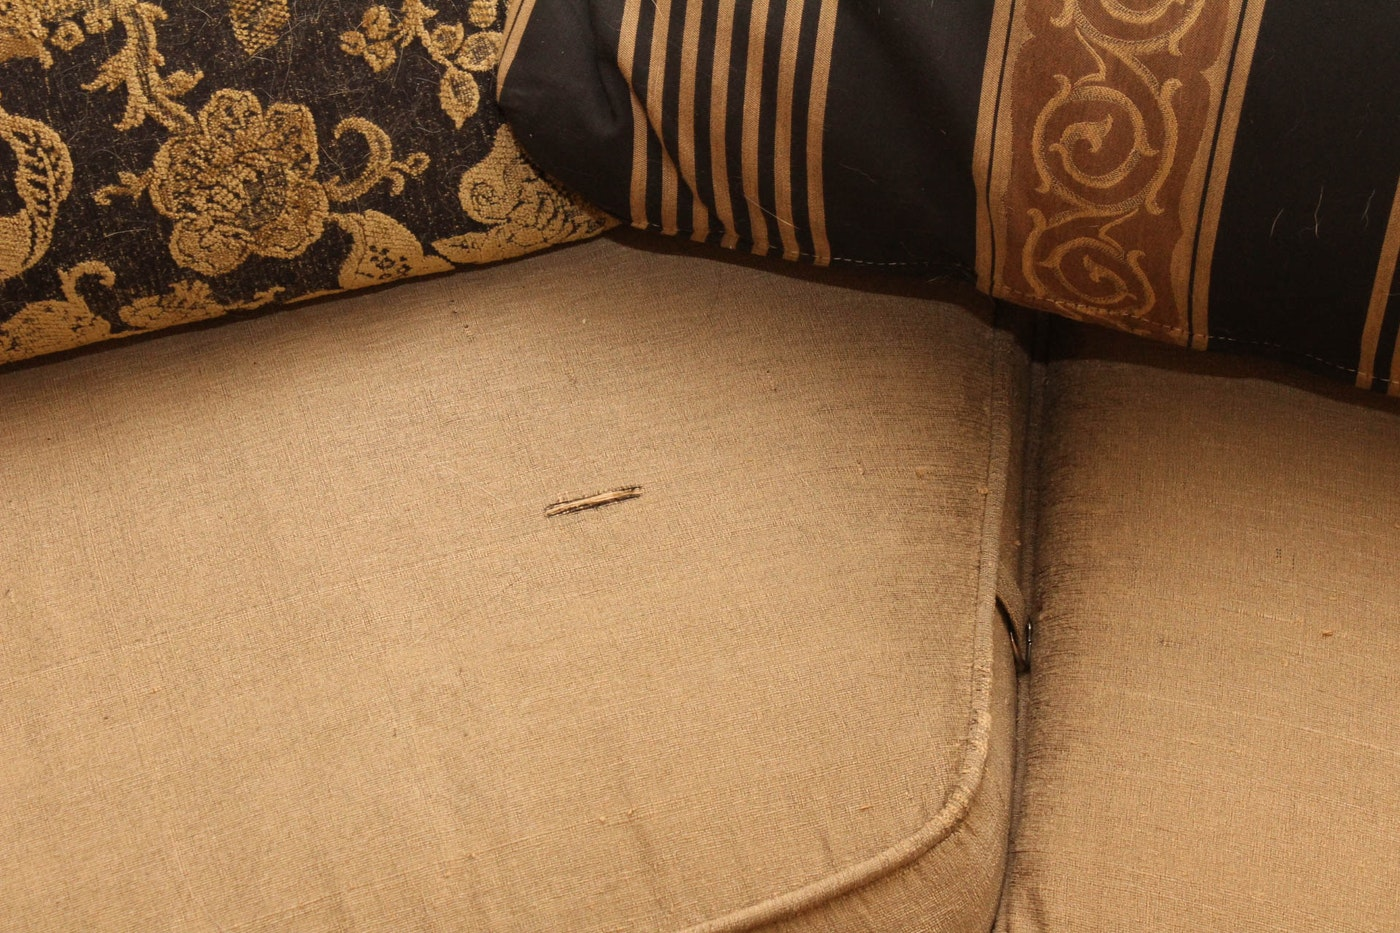 Throw Pillows With Matching Rug : Curved Sofa with Coordinating Throw Pillows and Accent Rug : EBTH